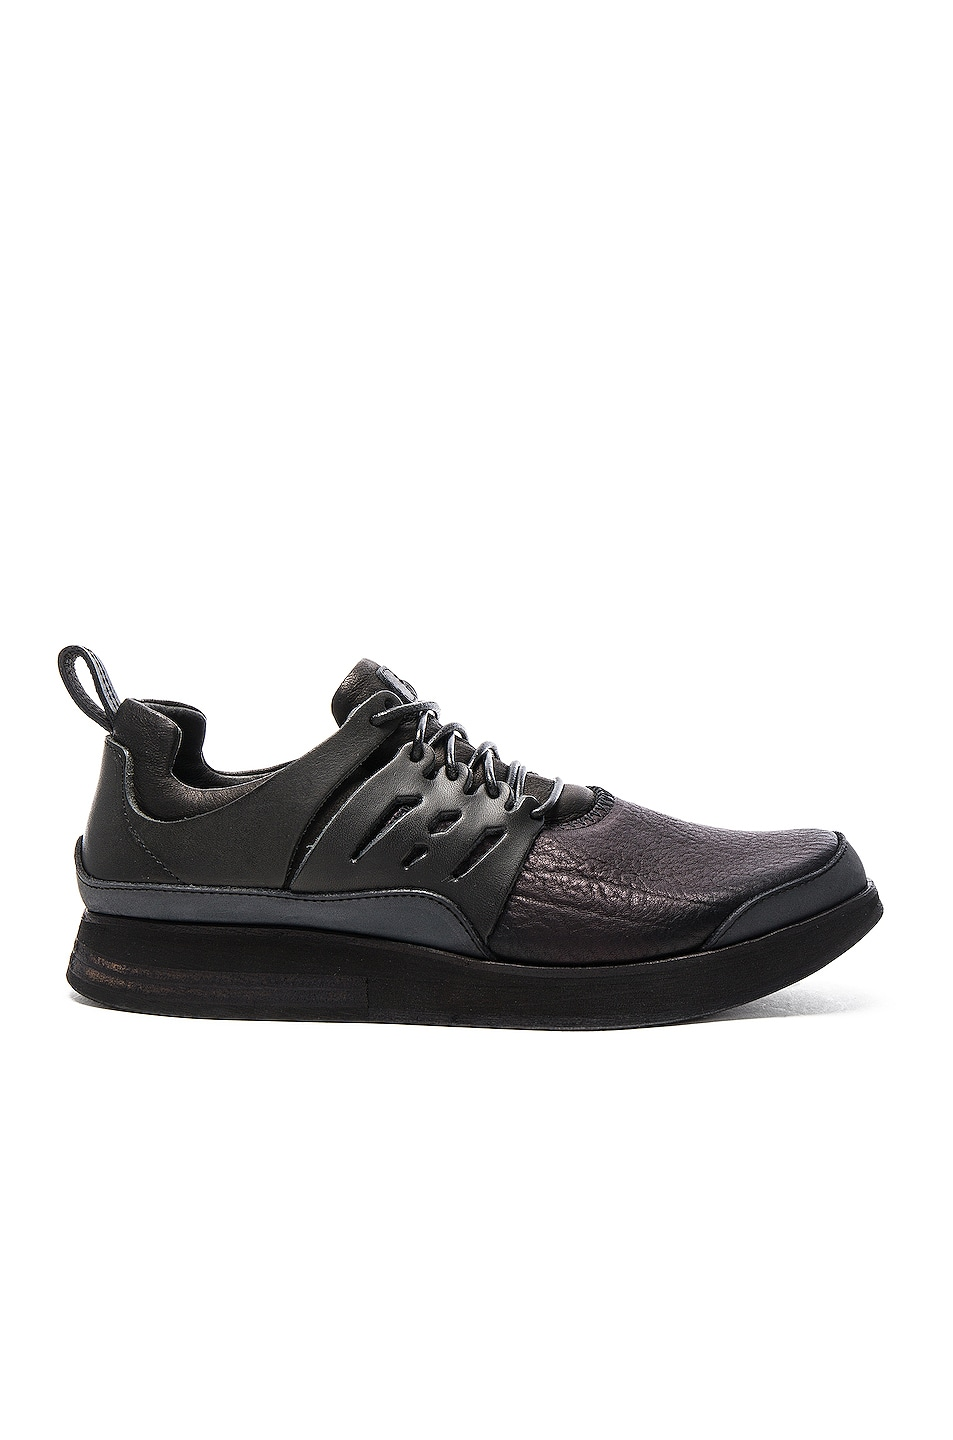 Image 1 of Hender Scheme Manual Industrial Product 12 in Black